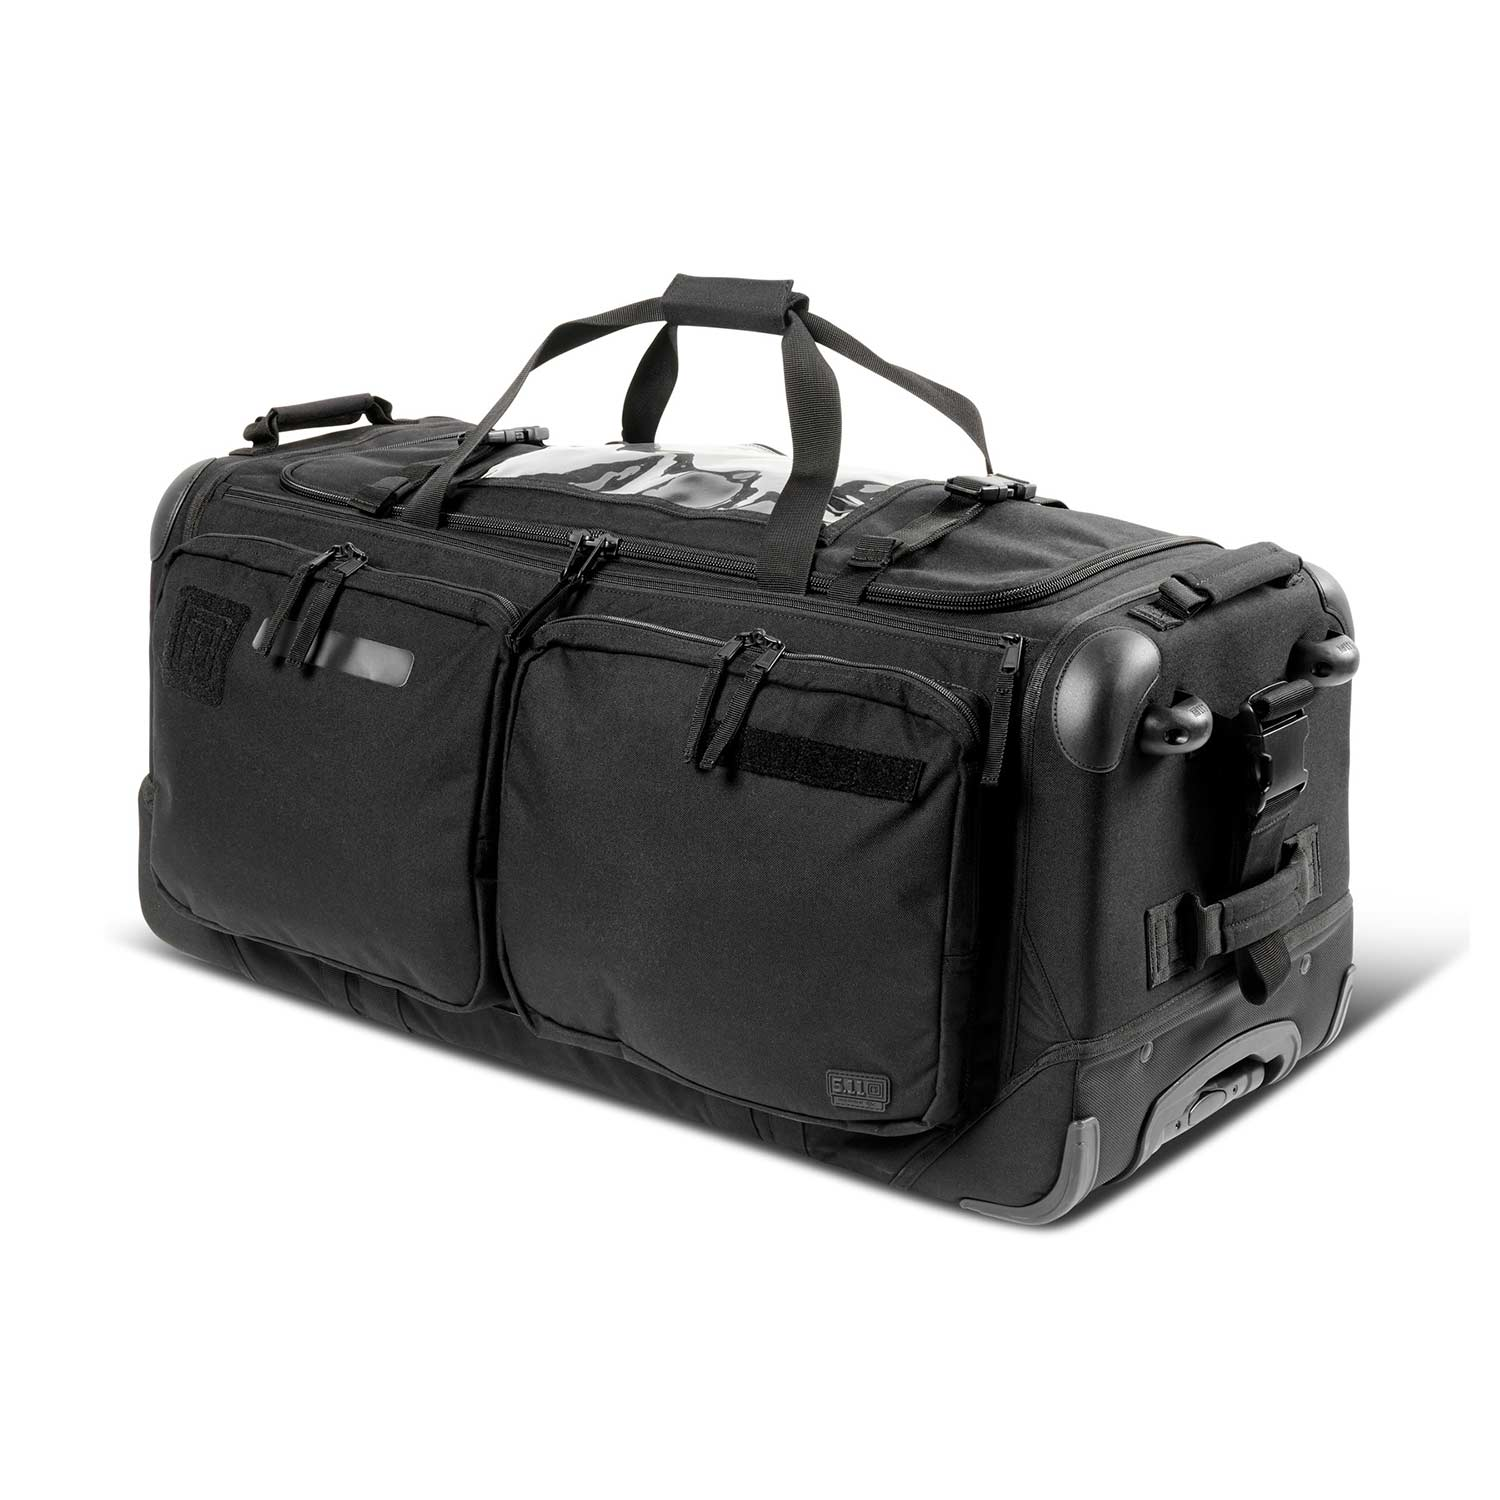 5.11 Tactical SOMS 3.0 Rolling Bag